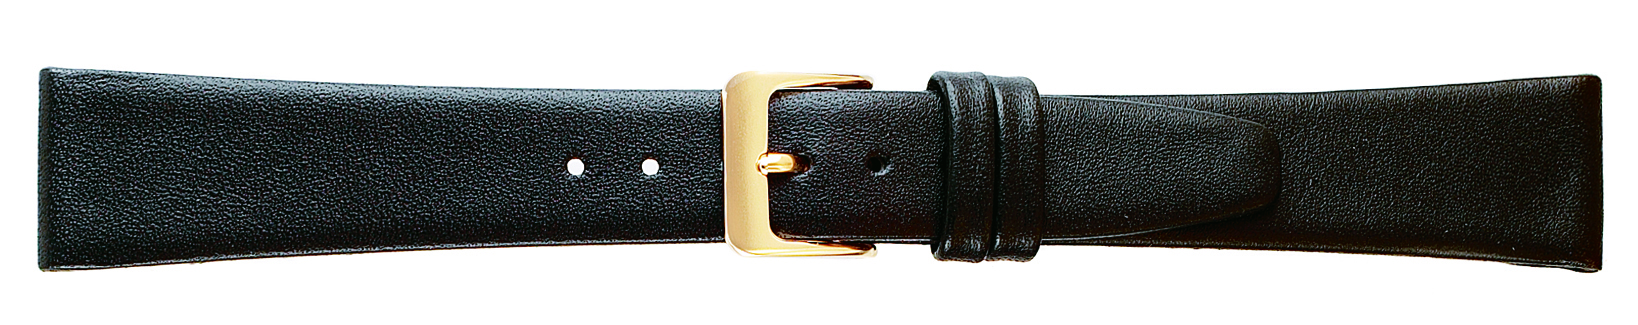 18MM Leather Band Black Smooth Calf Extra Long-0